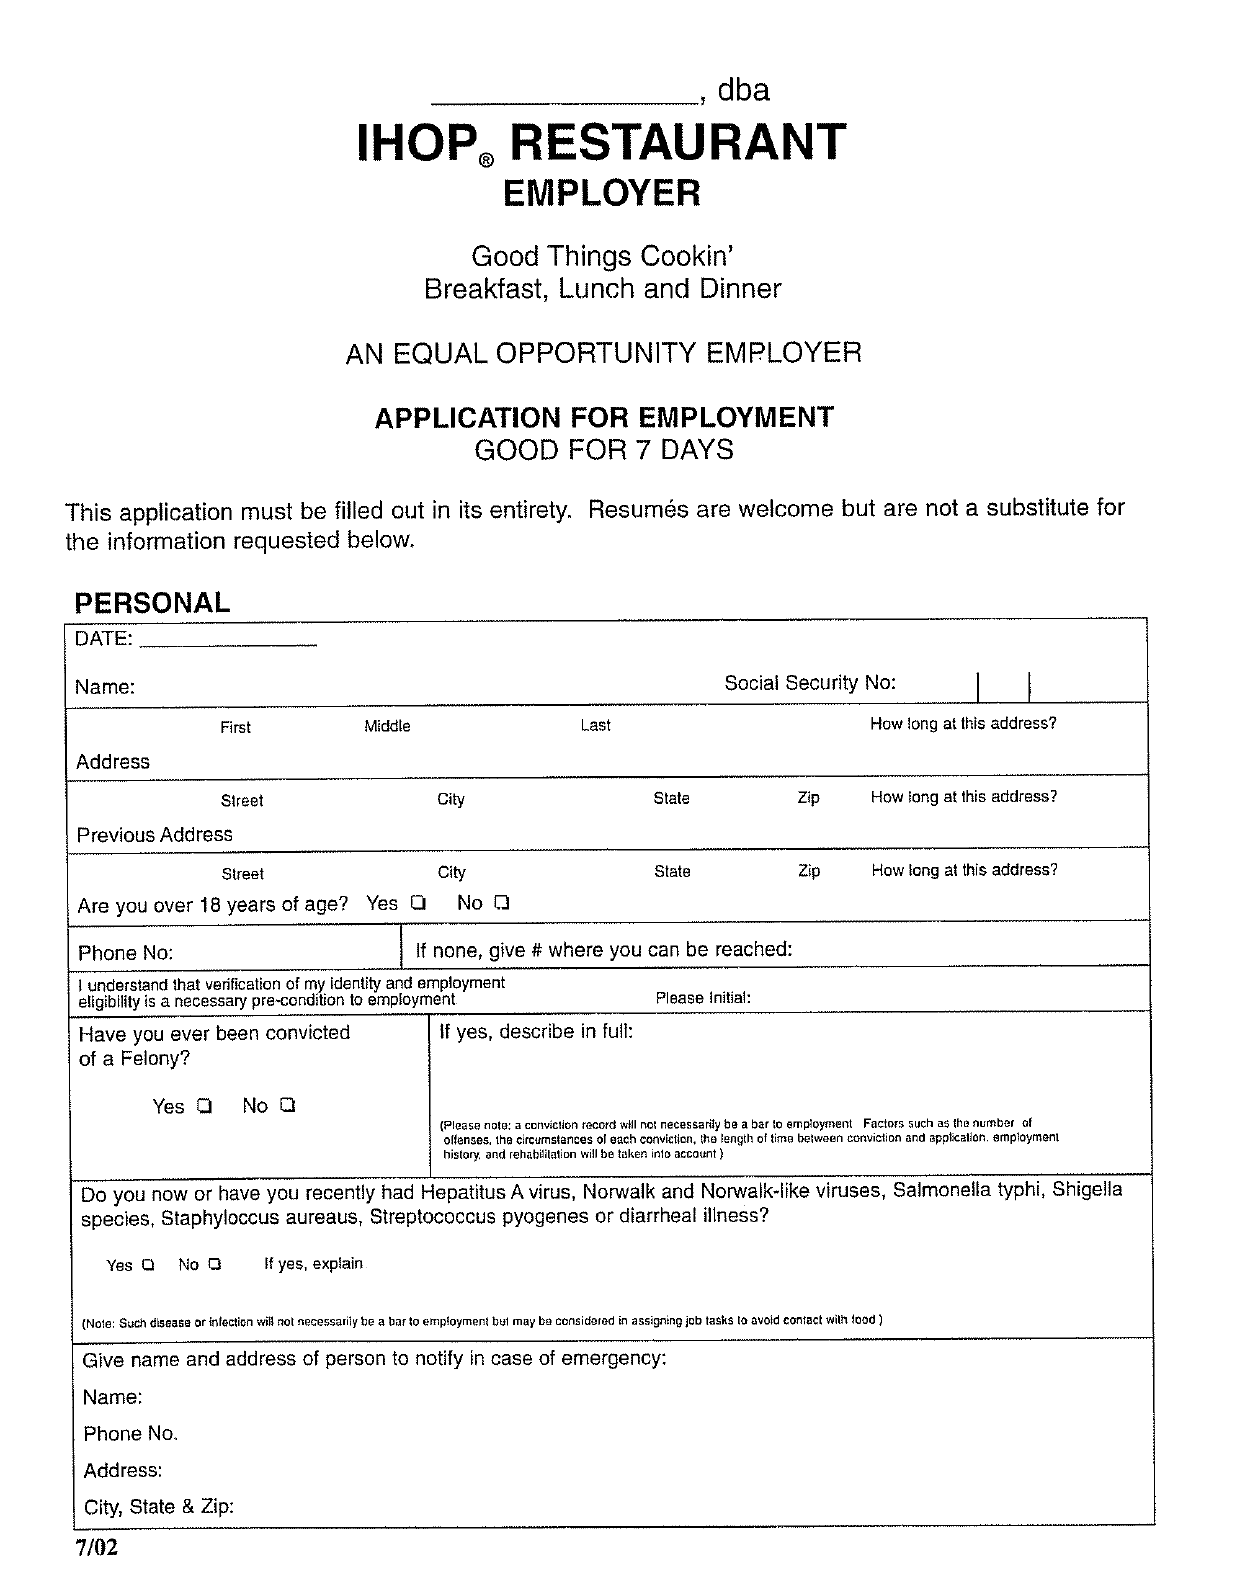 the ihop restaurant employer application for employment can help ihop restaurant employer application for employment